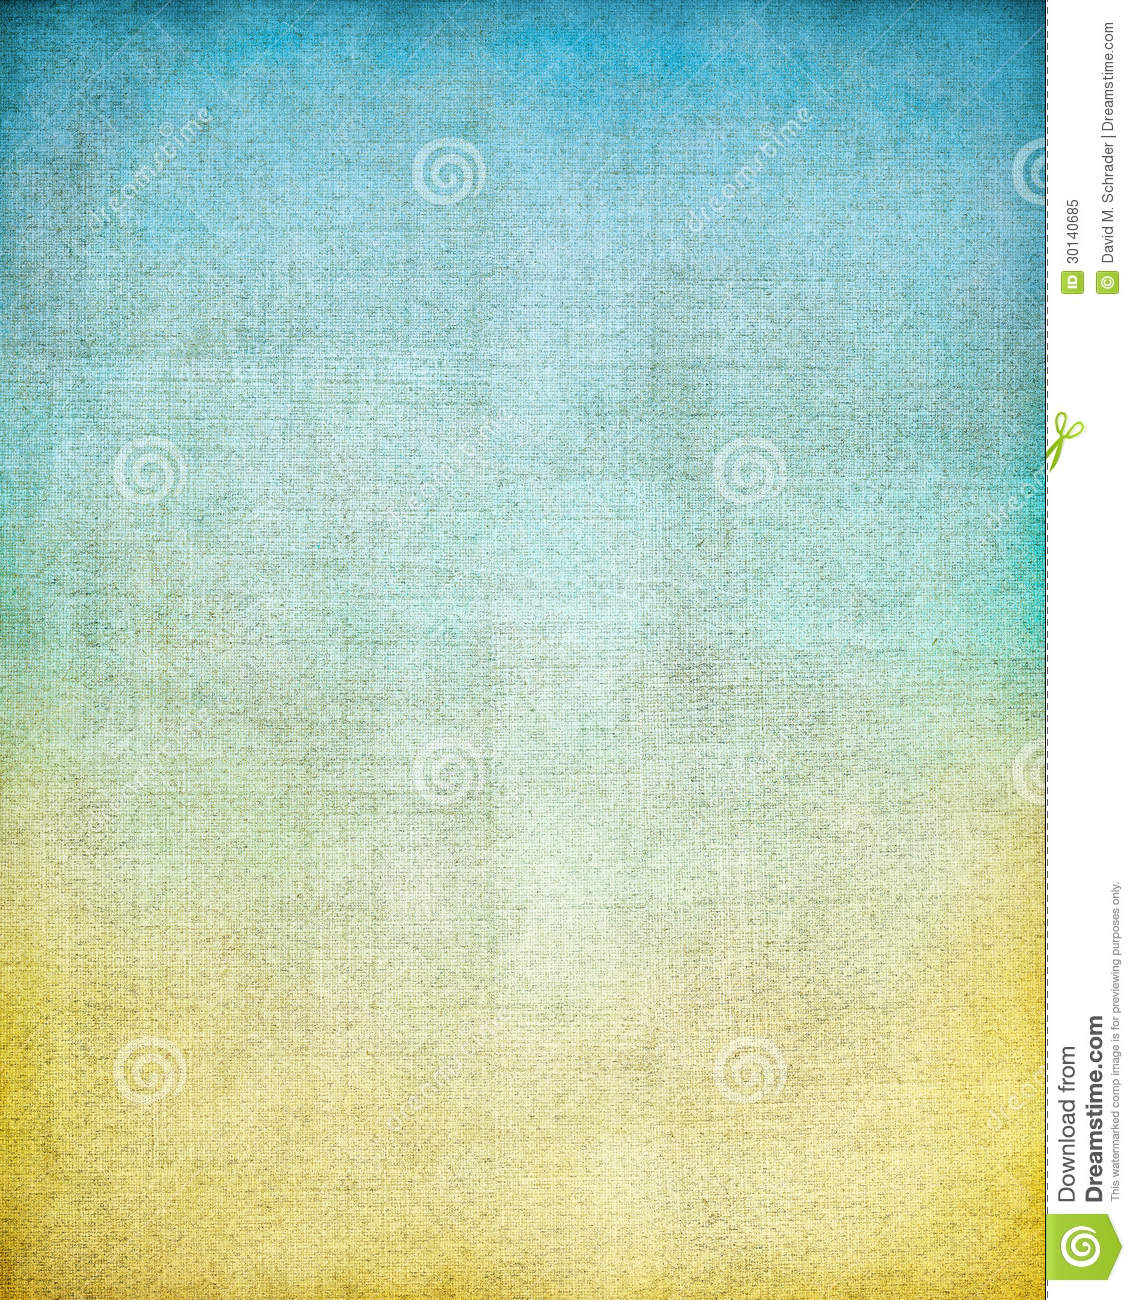 Book Cover Background Java : Vintage screen gradient royalty free stock photo image